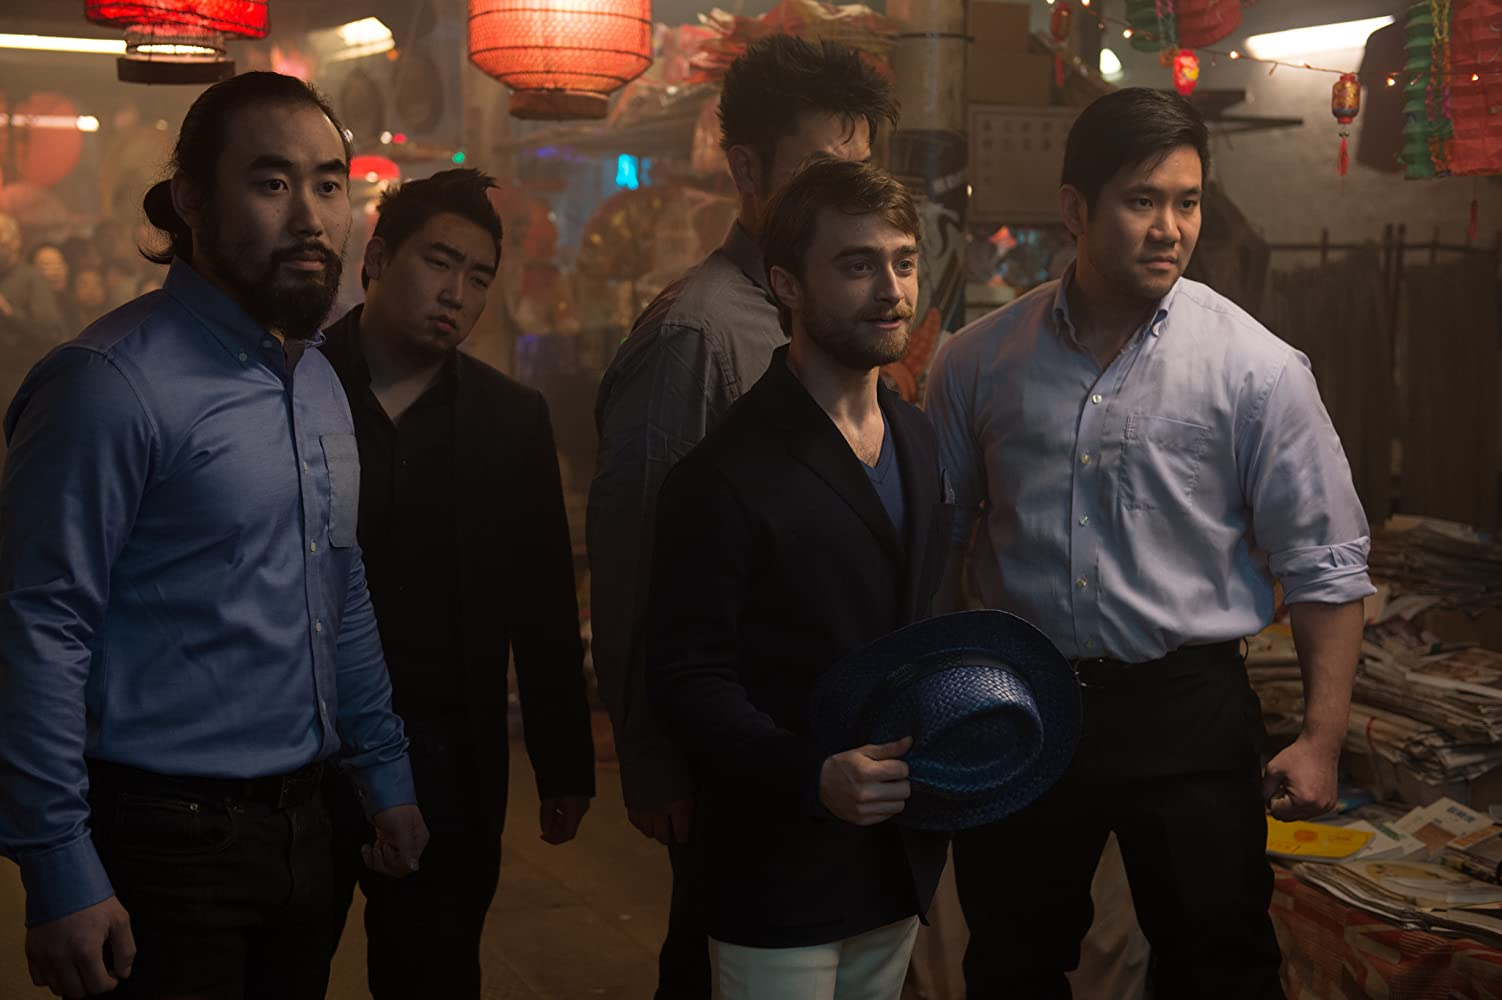 Daniel Radcliffe in Now You See Me 2 (2016)